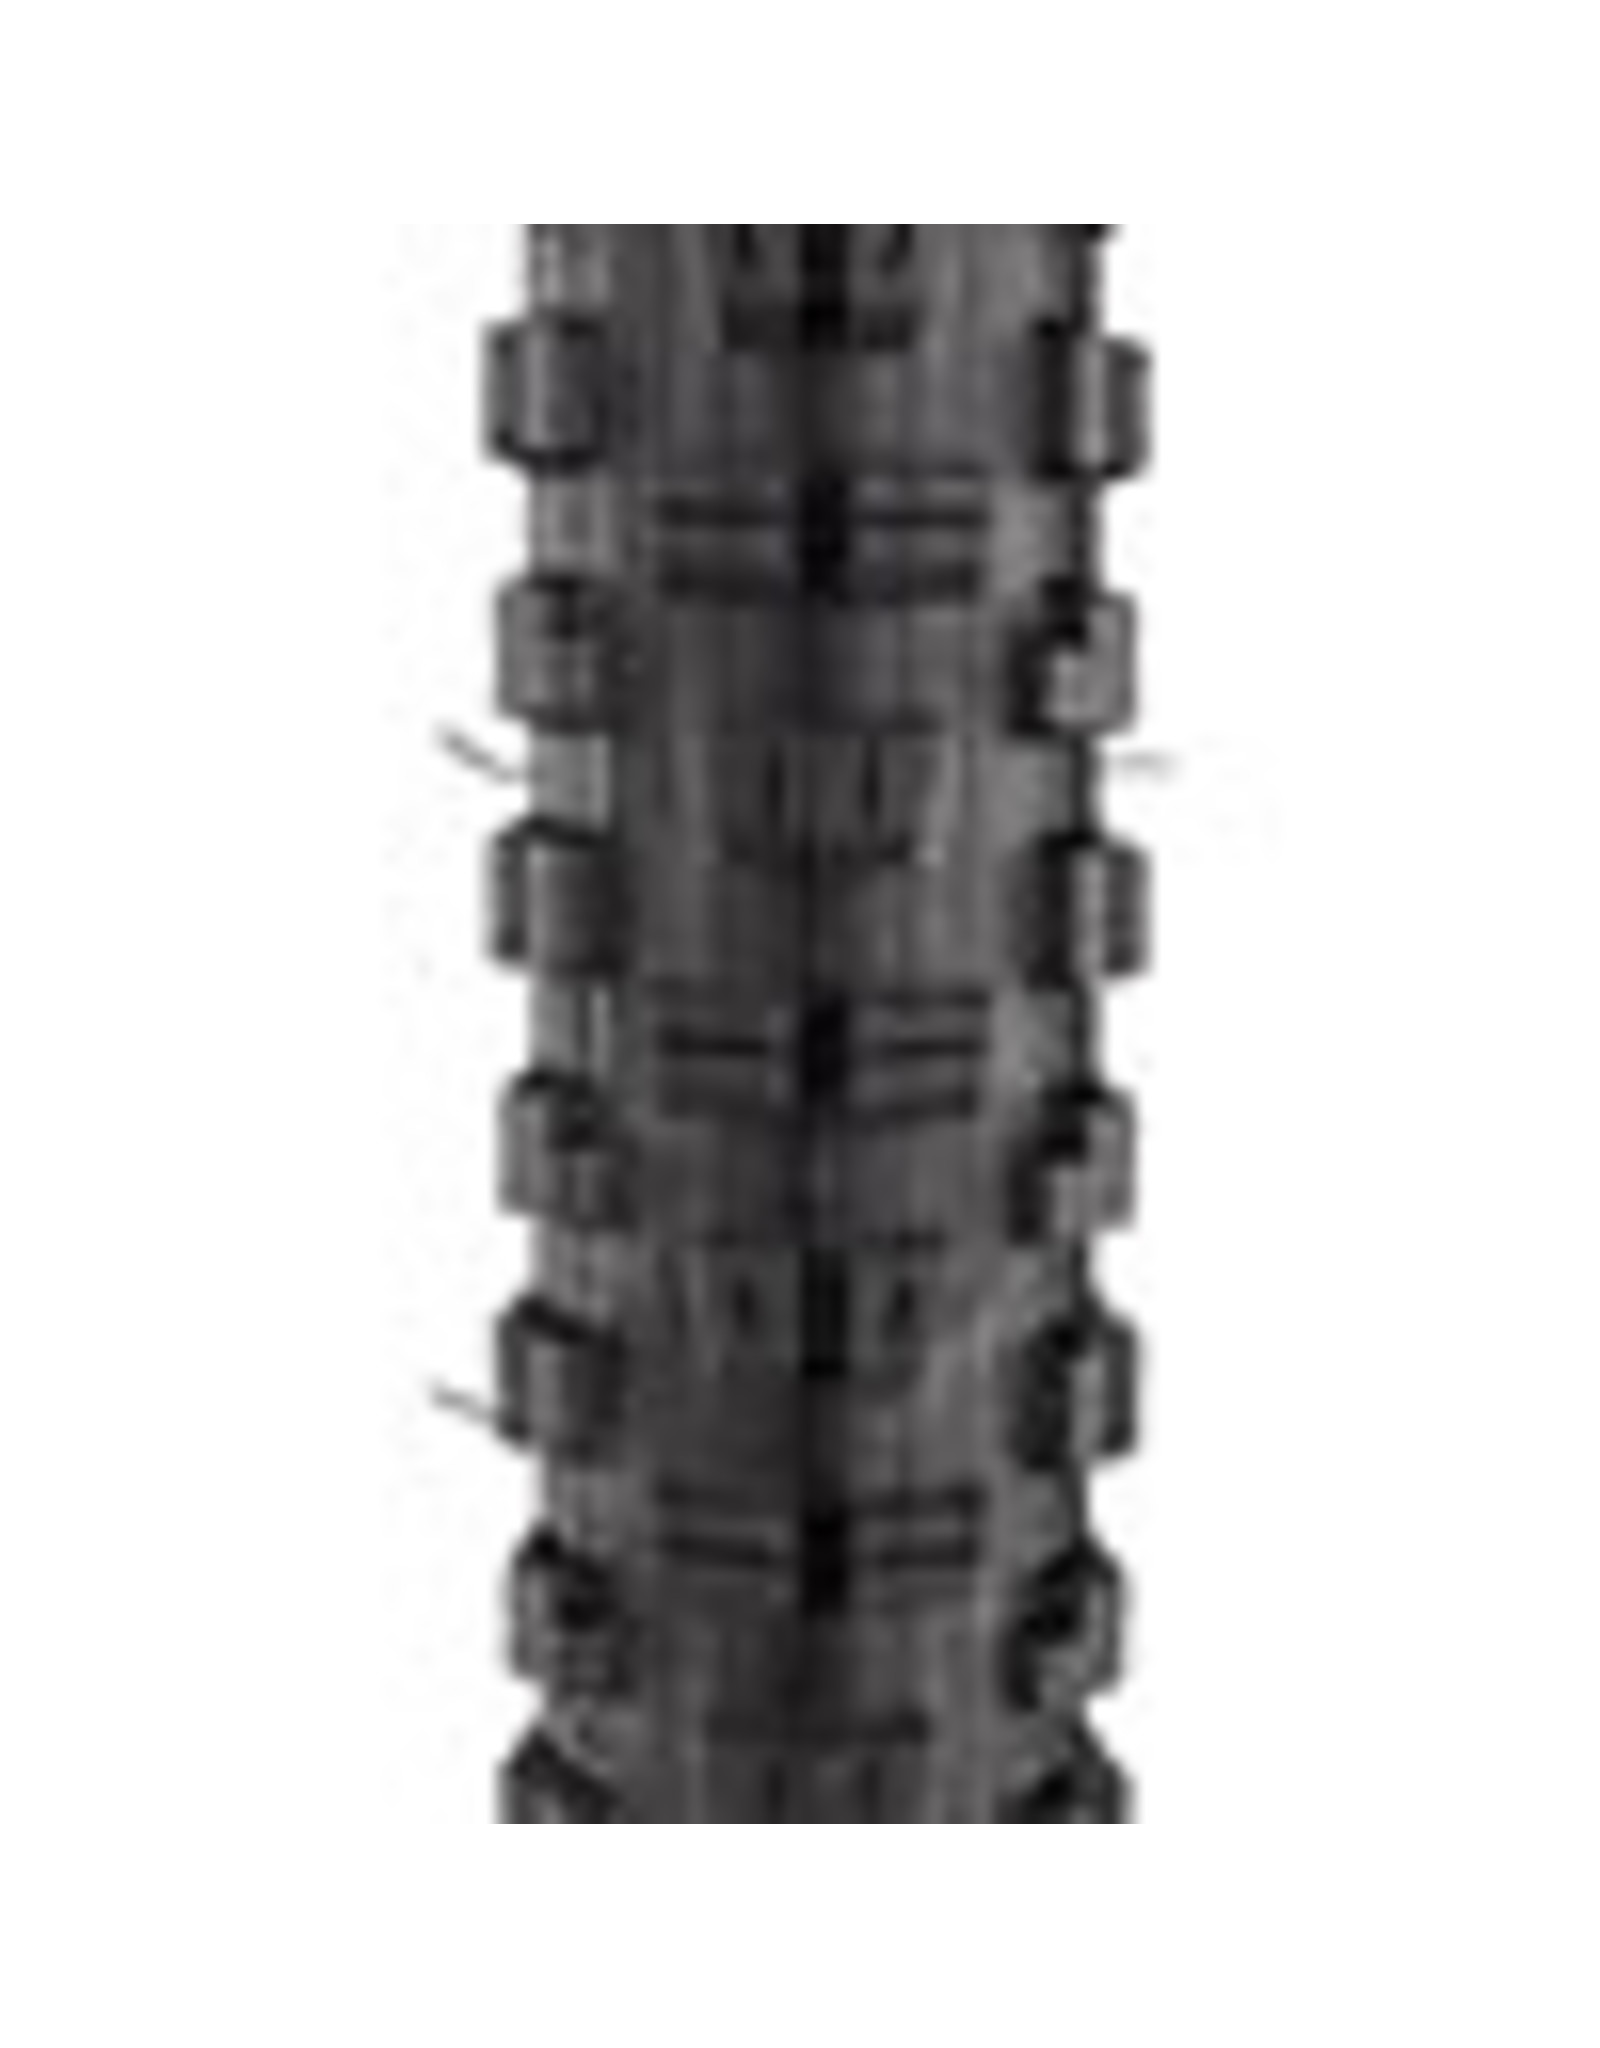 Maxxis Maxxis Minion DHR II Tire - 29 x 2.4, Tubeless, Folding, Black, 3C MaxxGrip, EXO, Wide Trail